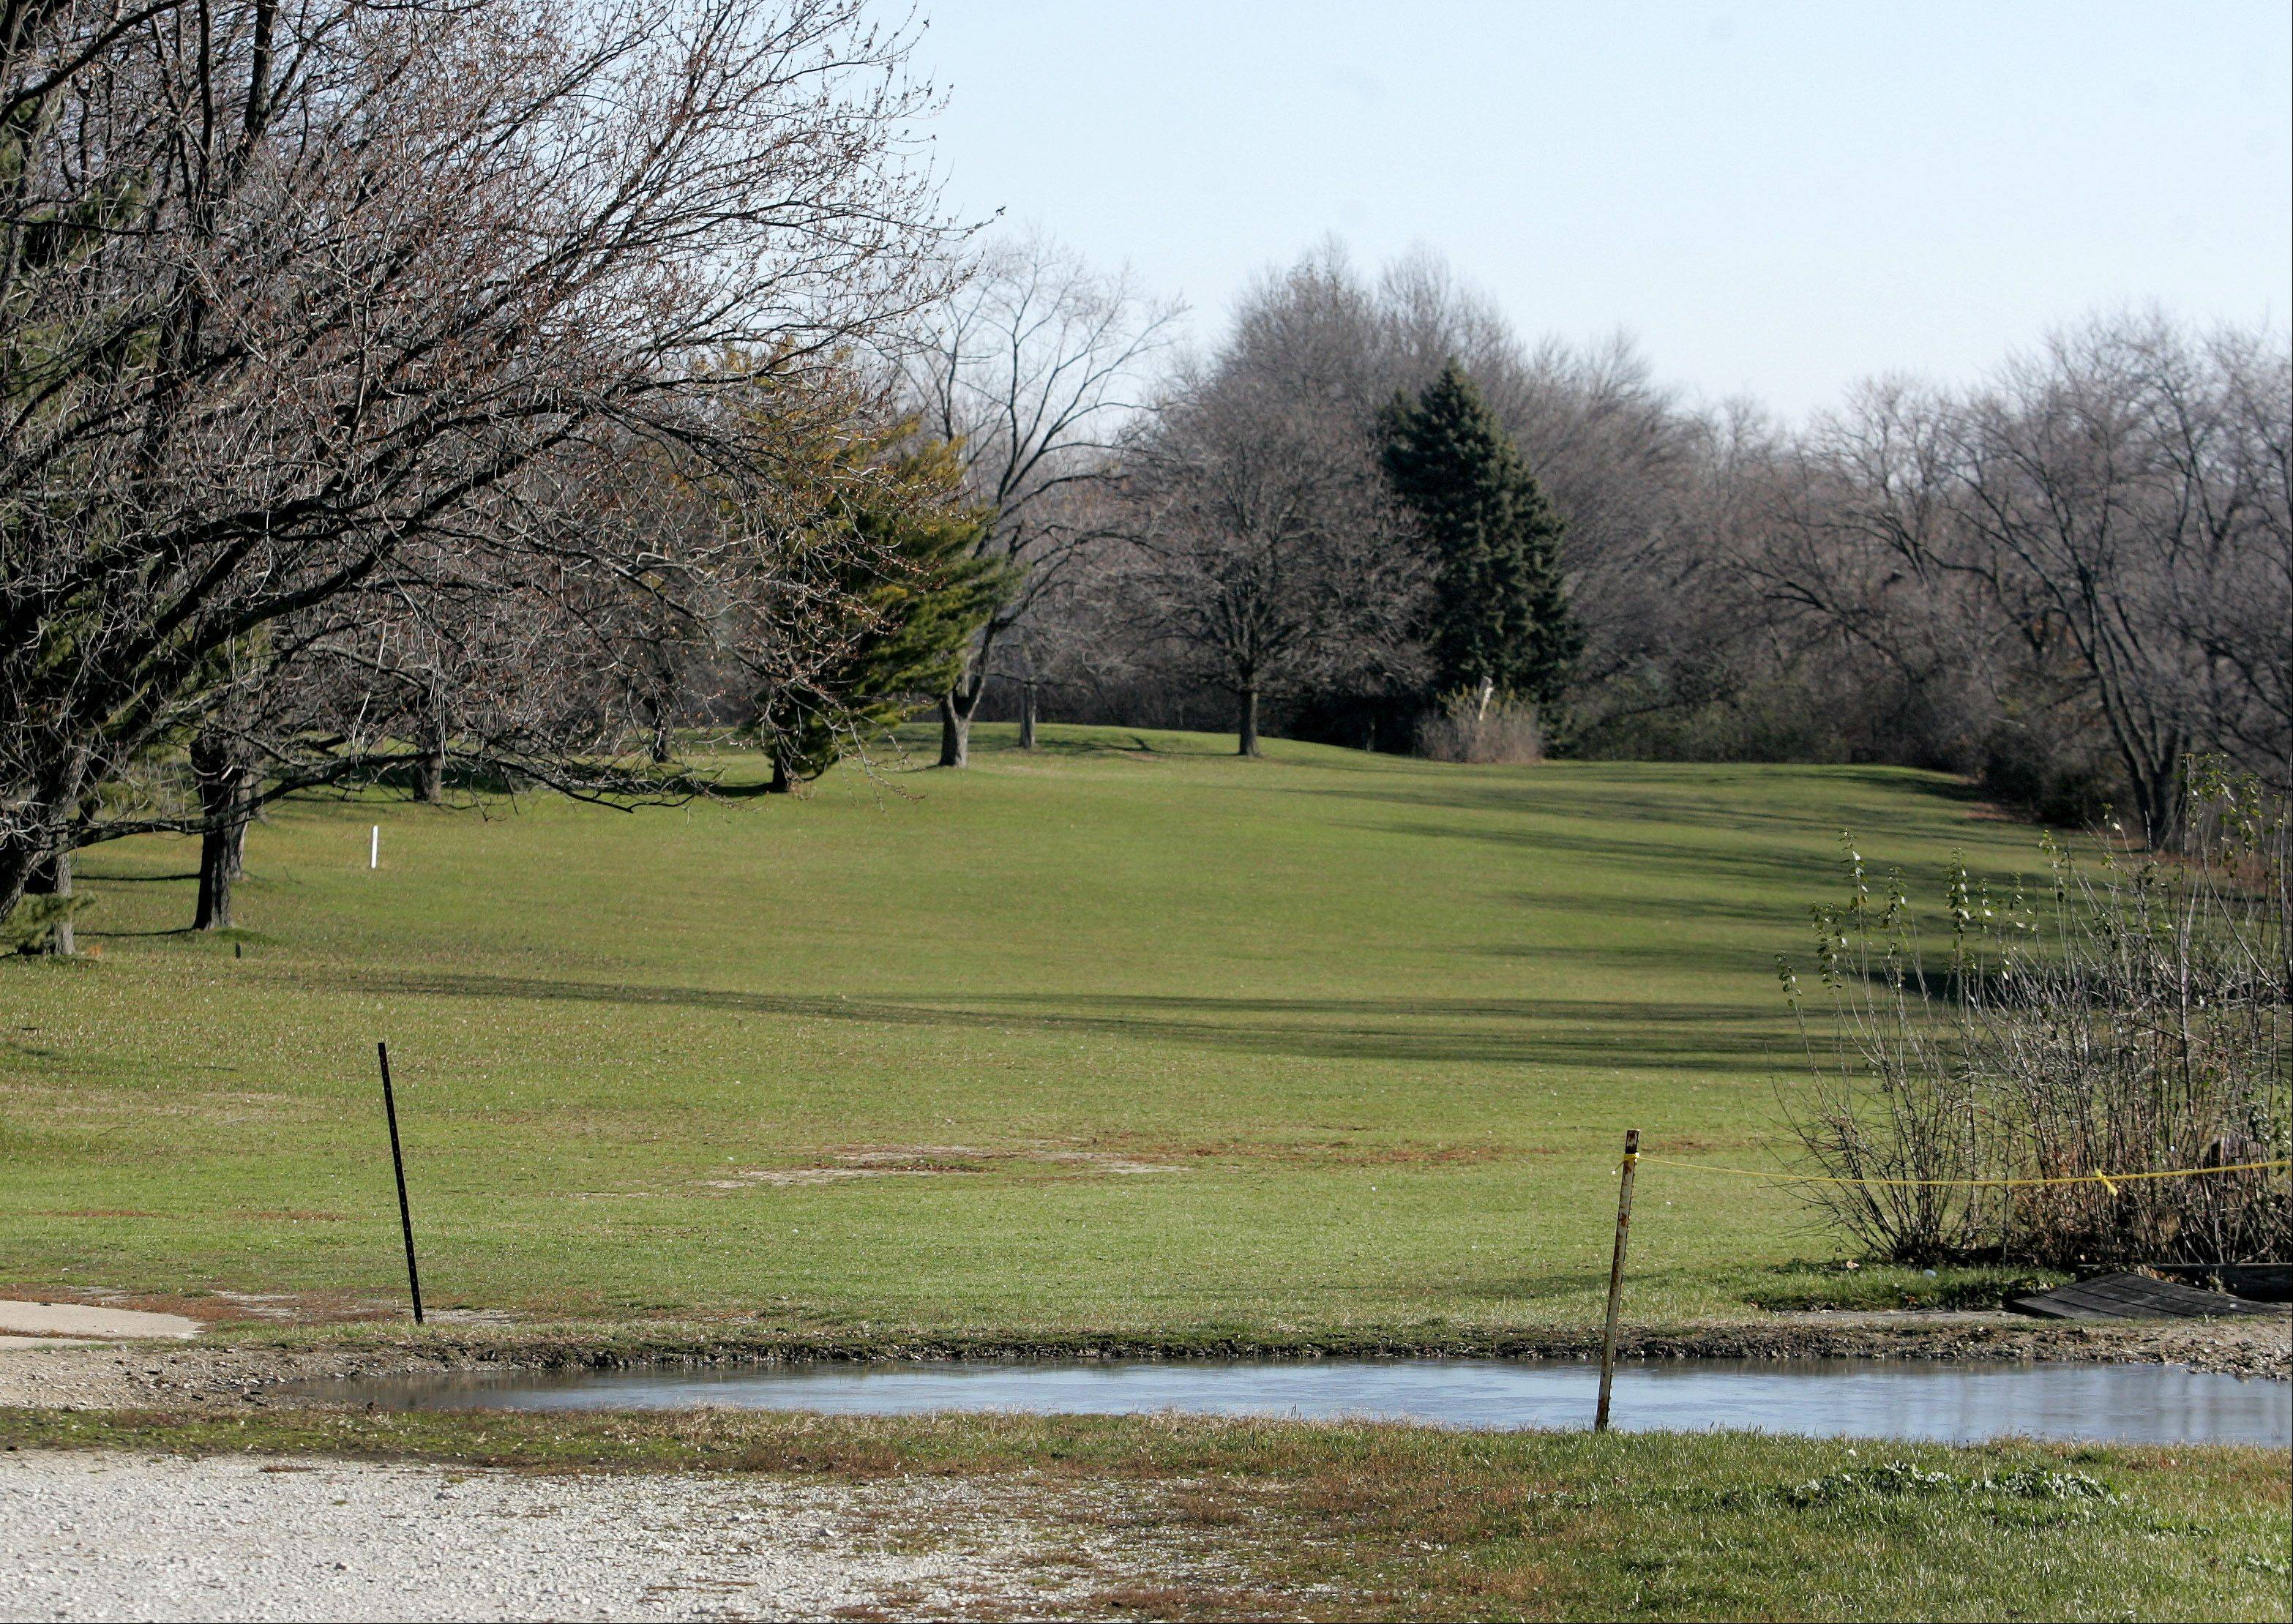 The Ken-Loch golf links property in an unincorporated area near Lombard is for sale, and a developer looking to buy it wants to build apartments and for-sale units. The land is identified as open space in Lombard planning documents, though, so the comprehensive plan would need to be changed to allow the sale and the development to move forward.